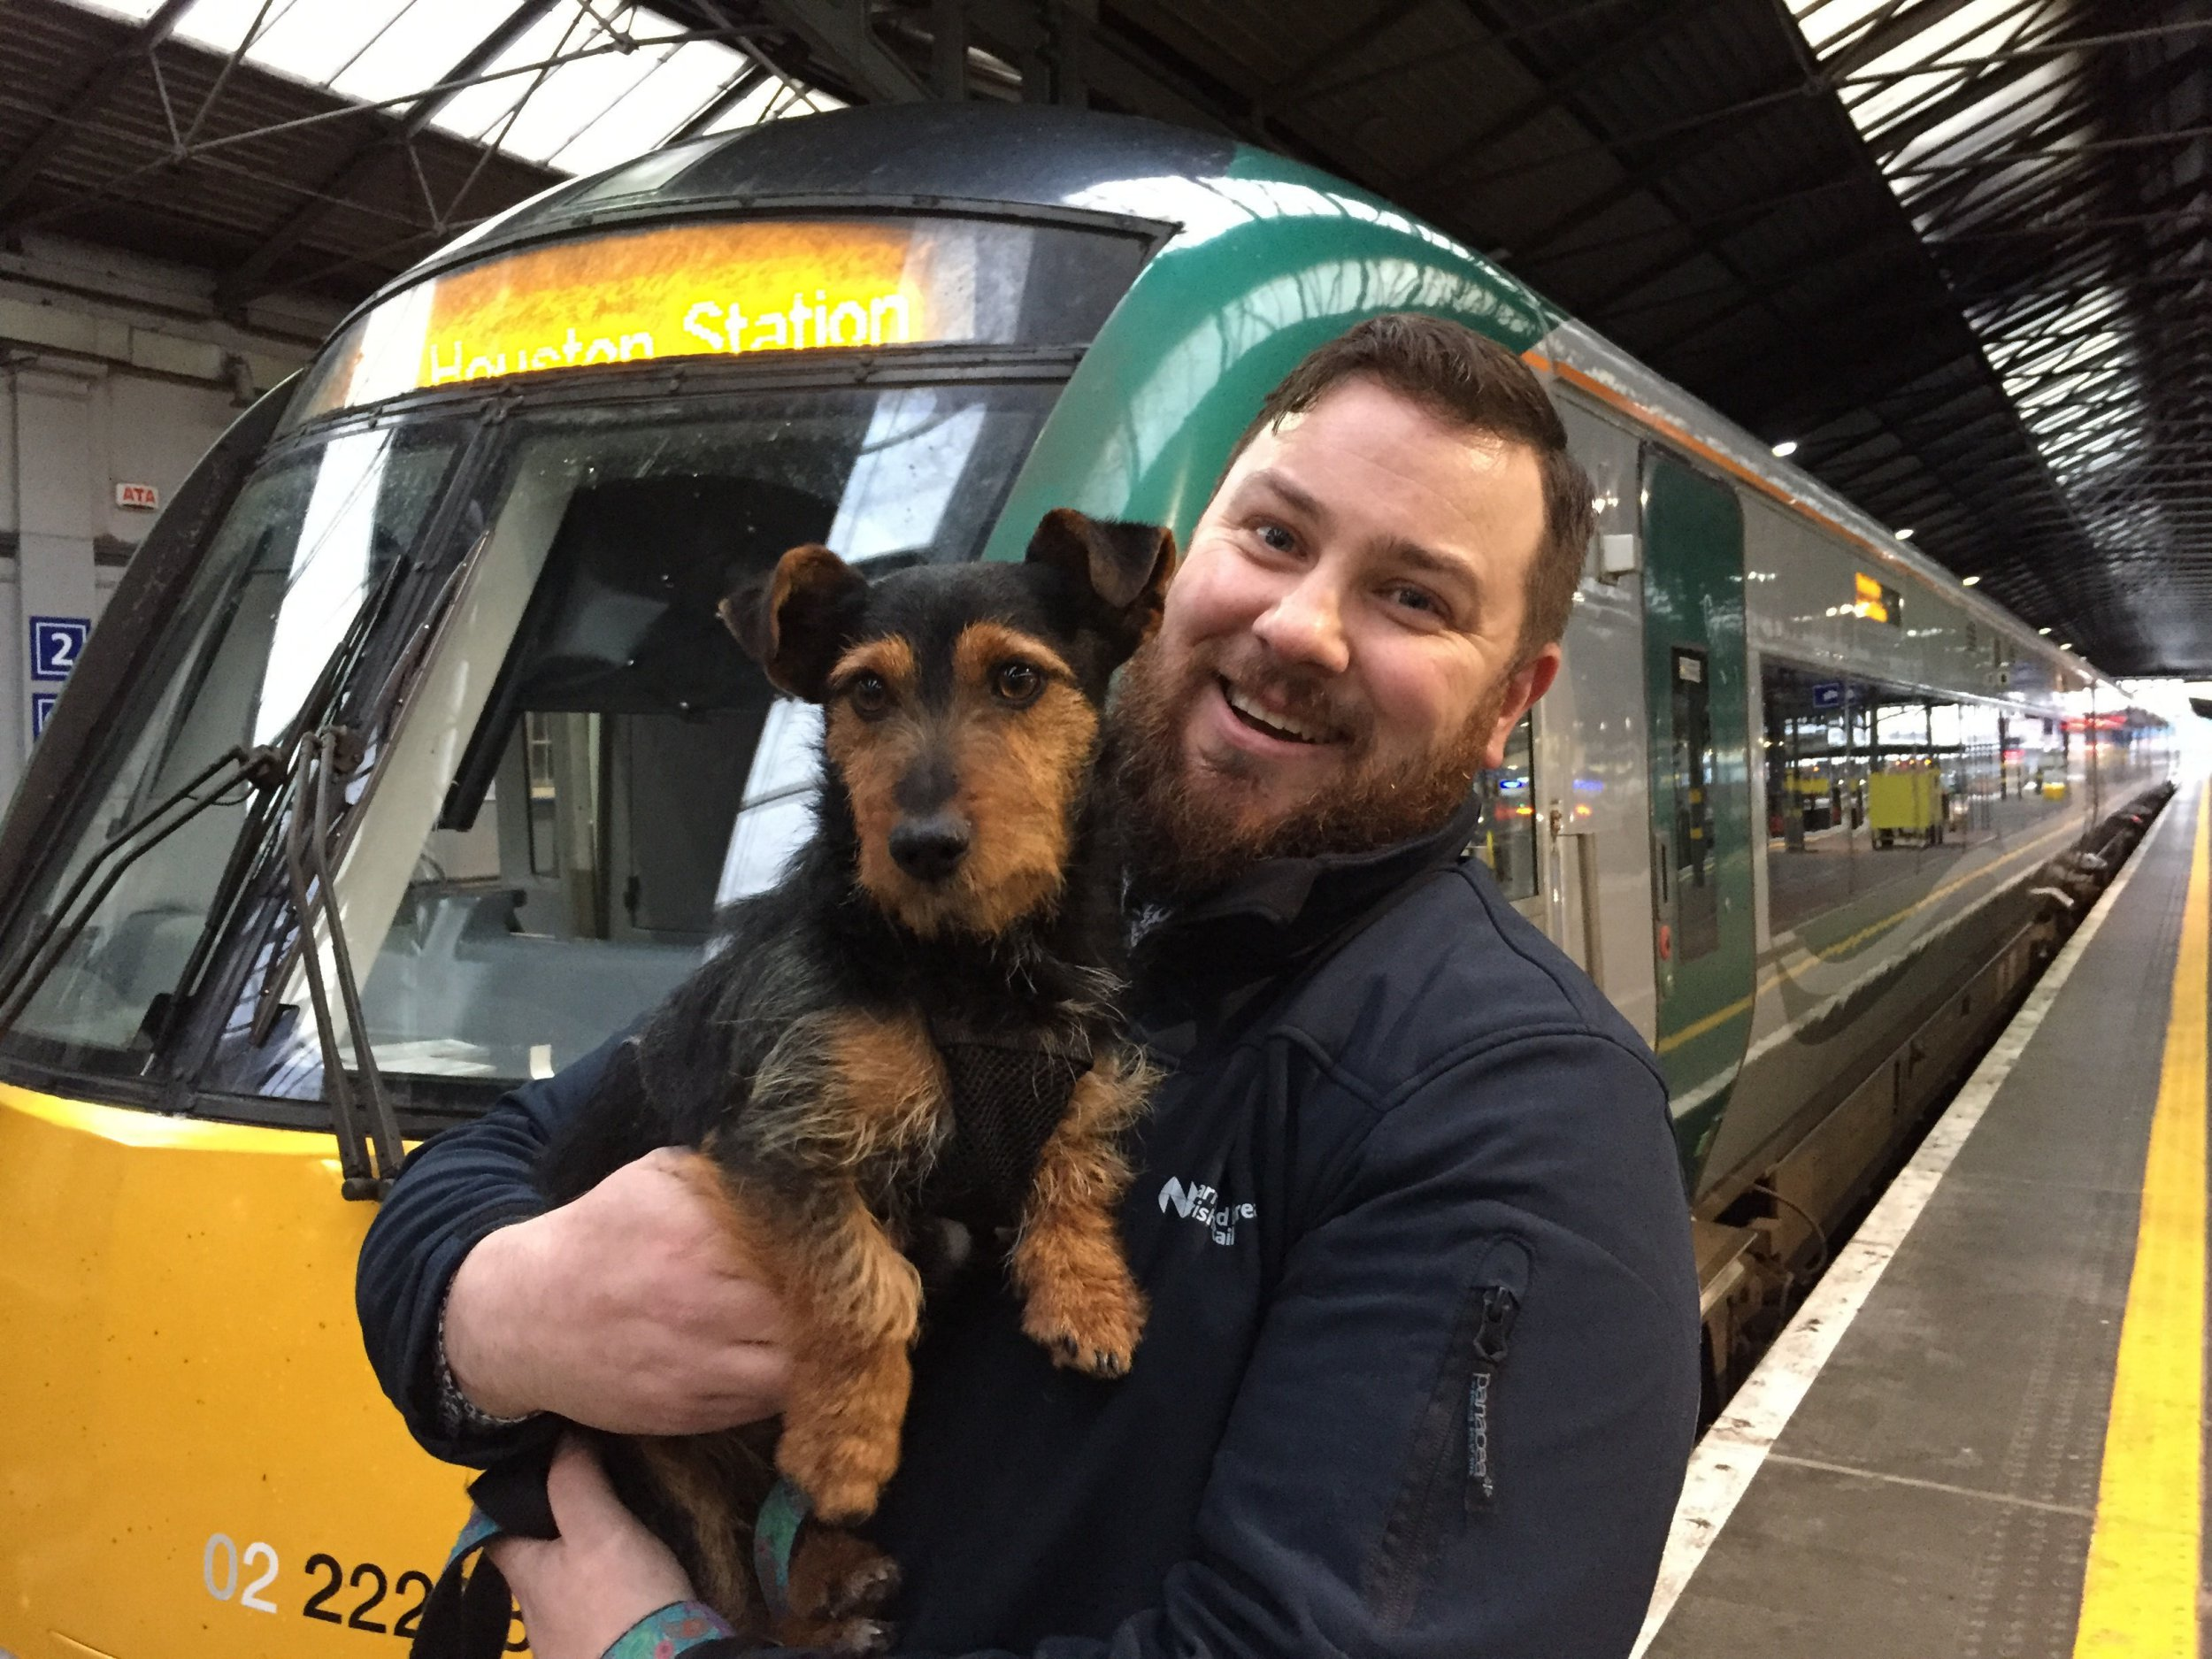 'Perfectly behaved' terrier boards commuter train all by himself